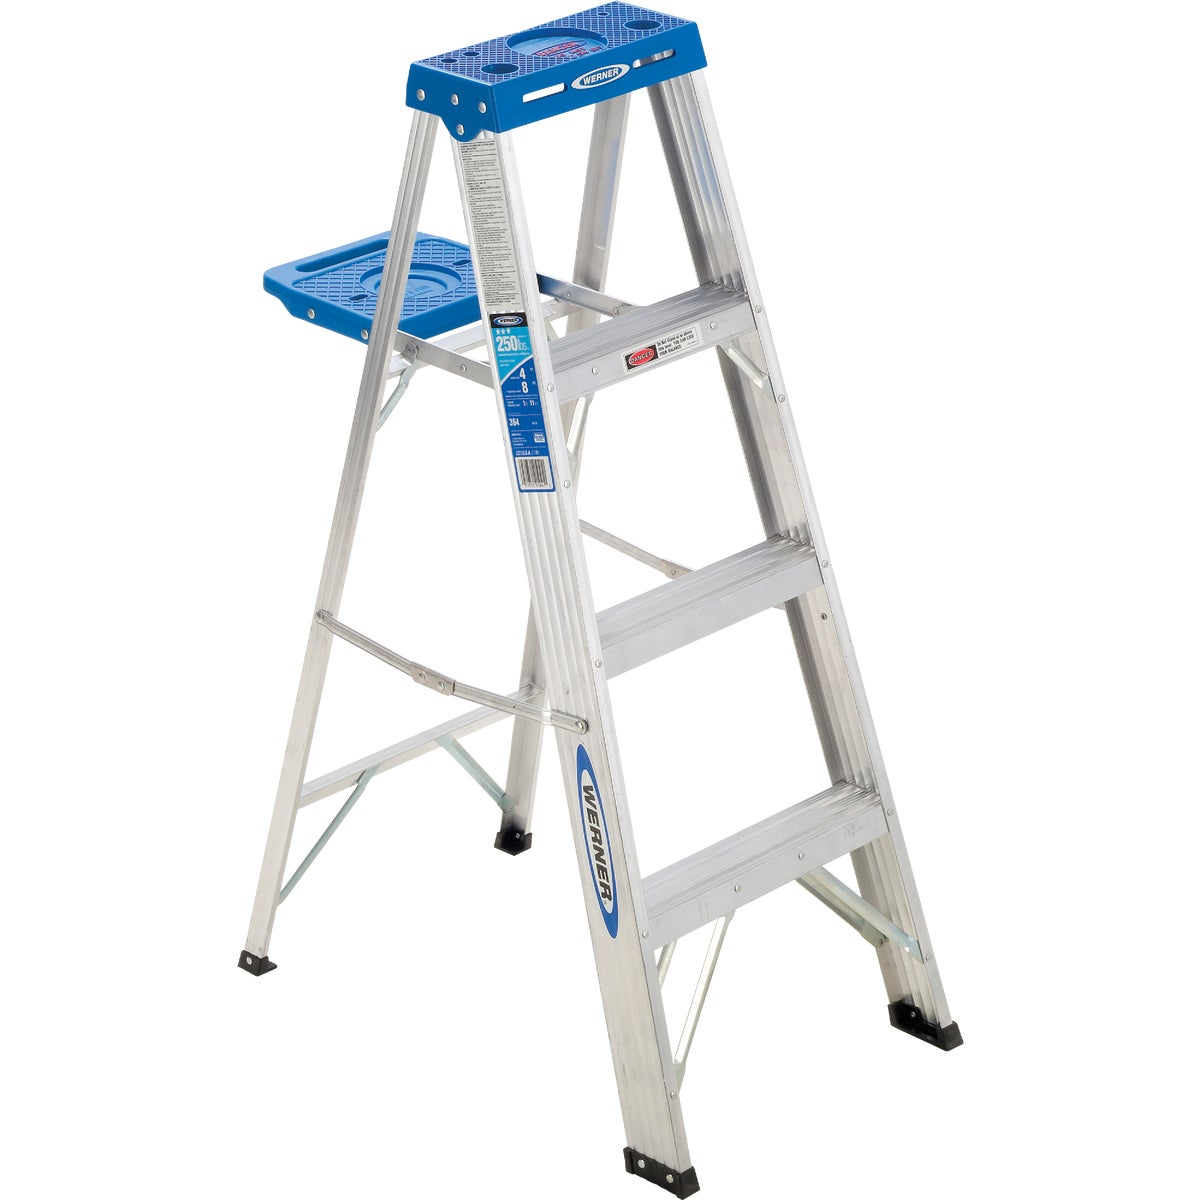 T-1 4' ALUM STEPLADDER - 364 by Werner Ladder